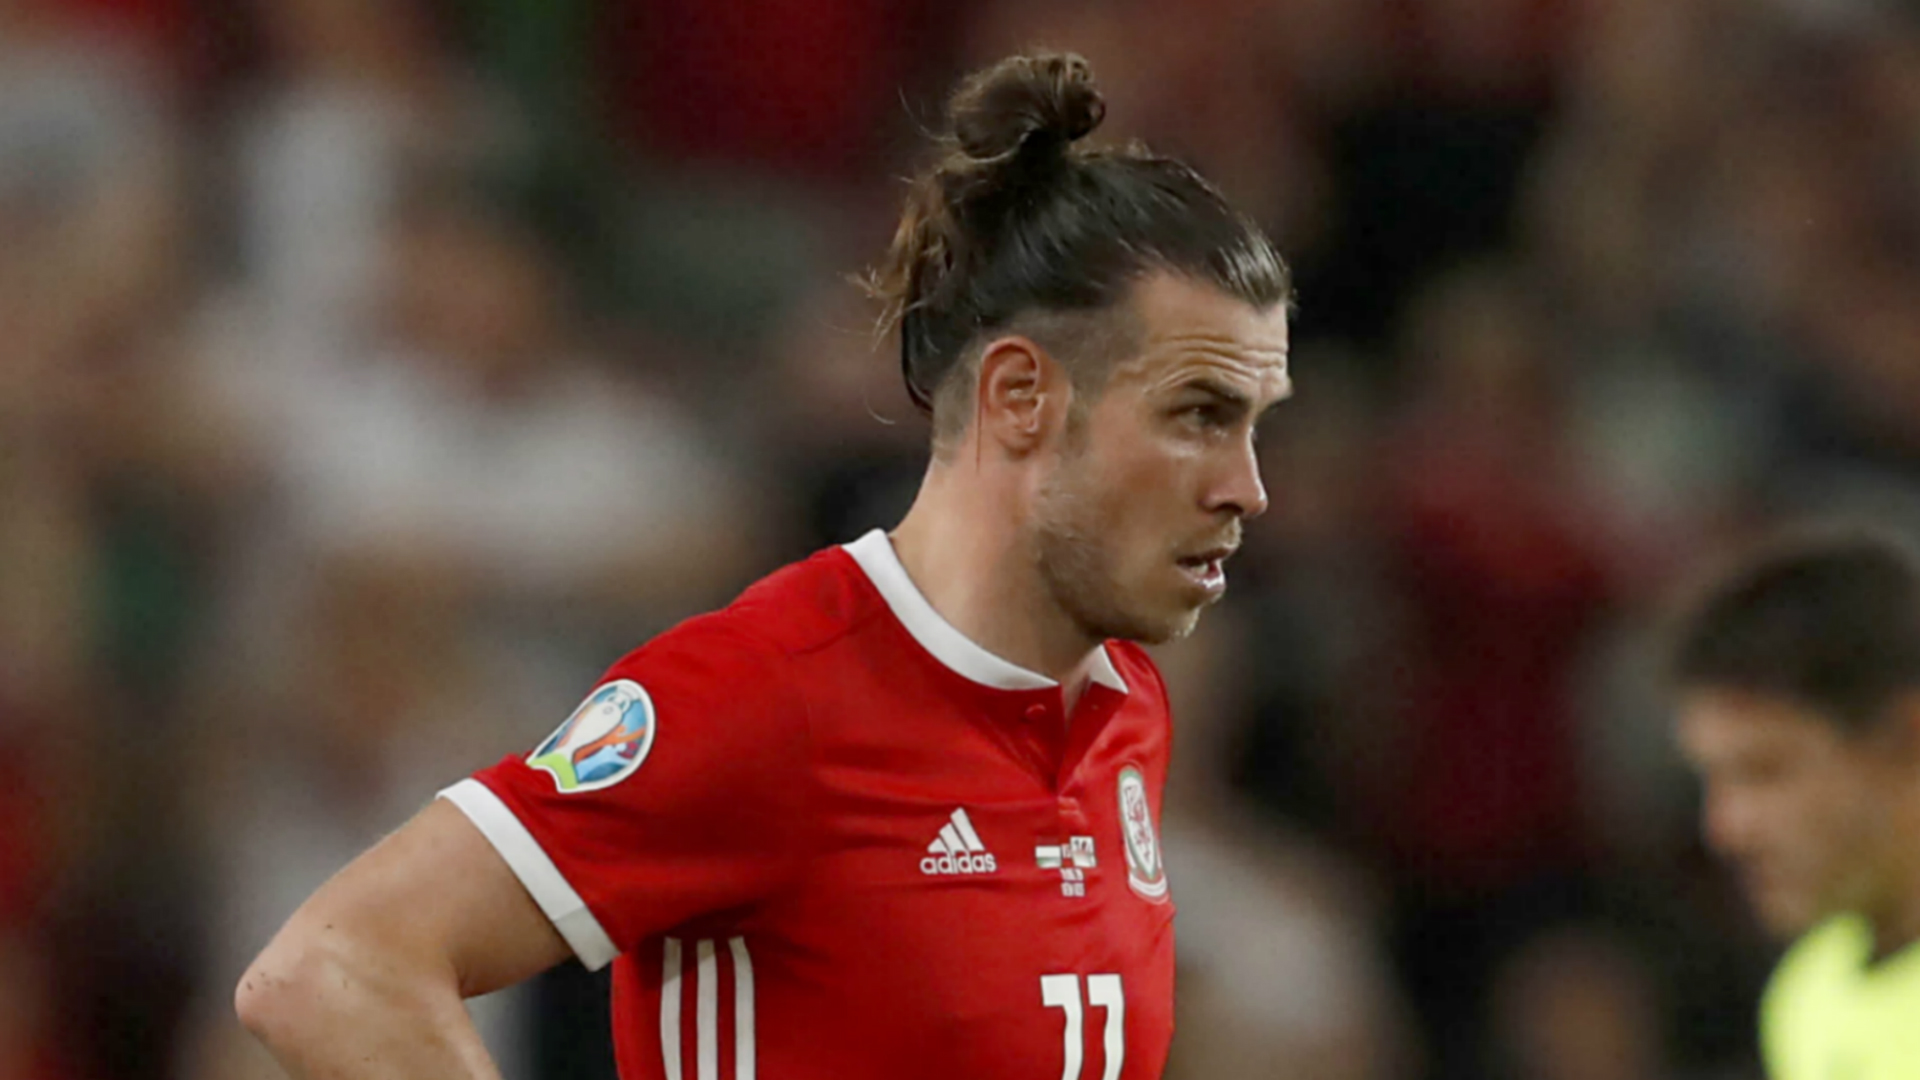 Giggs admits struggle to find effective role for Bale